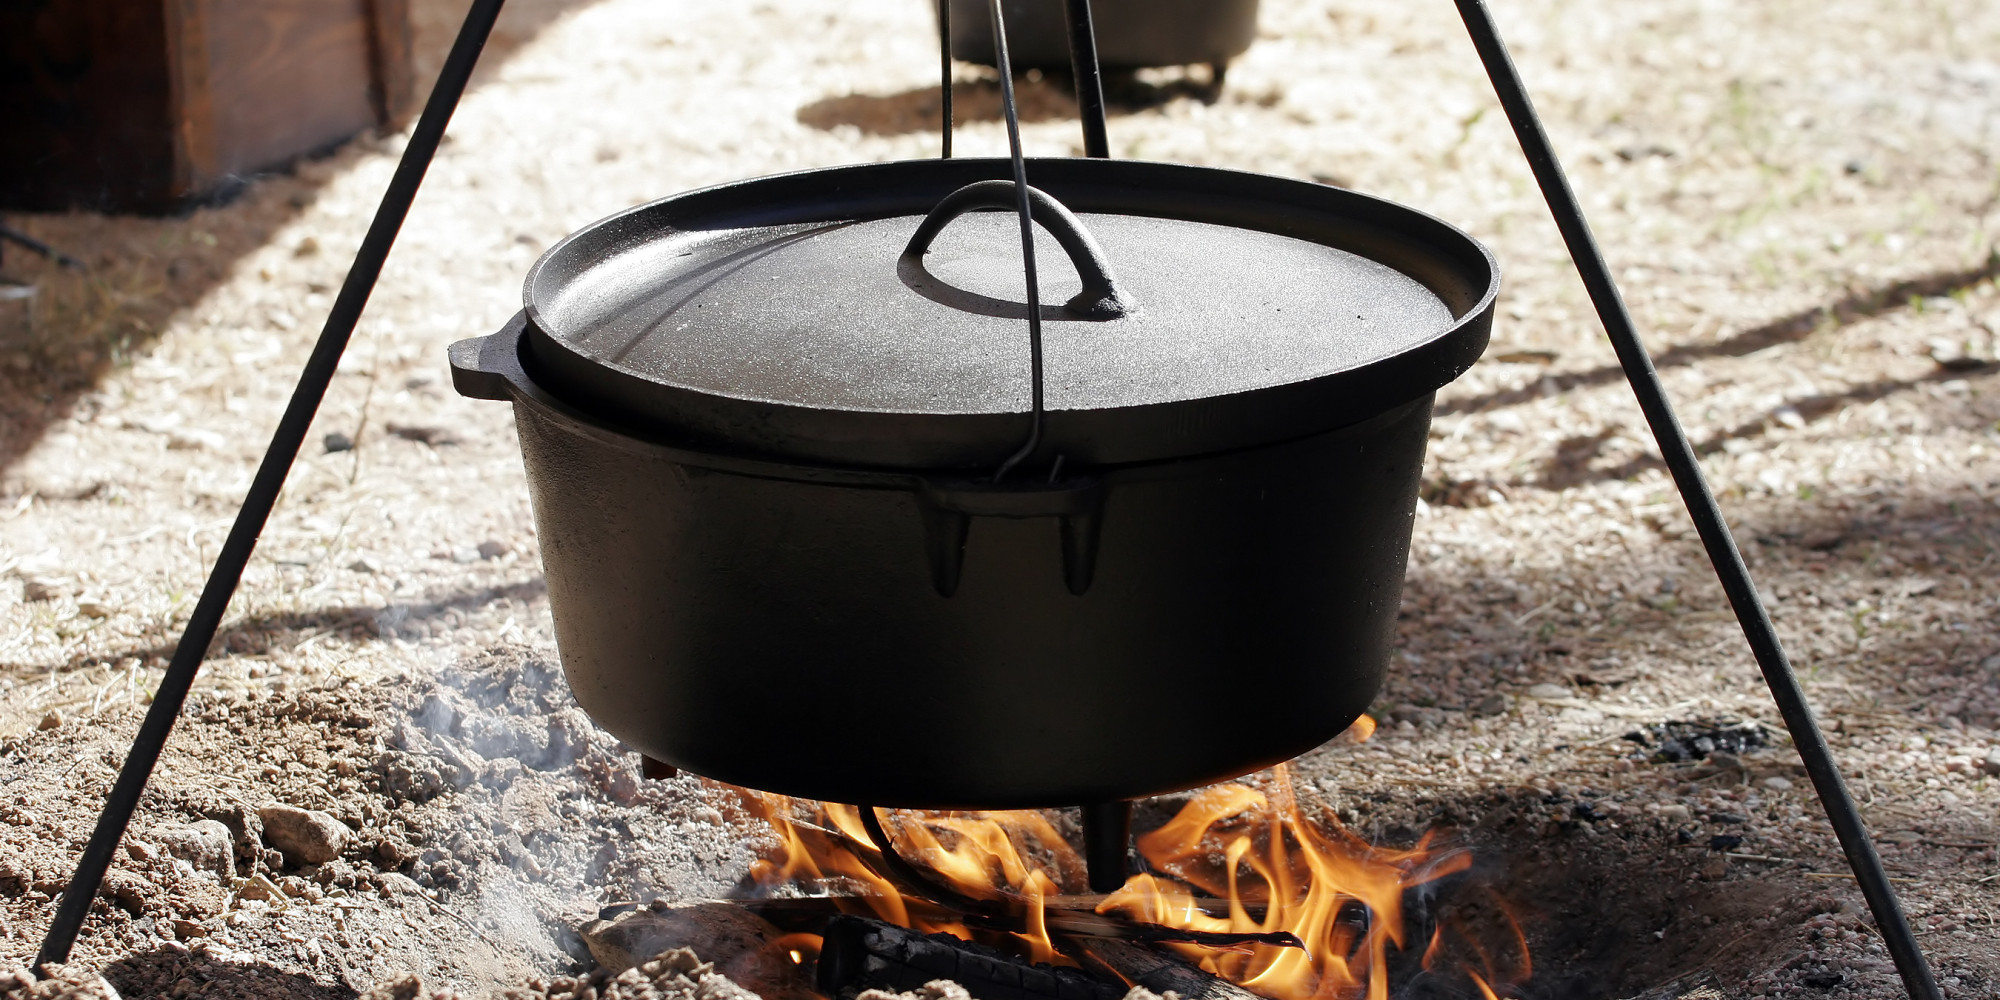 Dutch Oven Desserts Camping  21 Dutch Oven Recipes For Camping